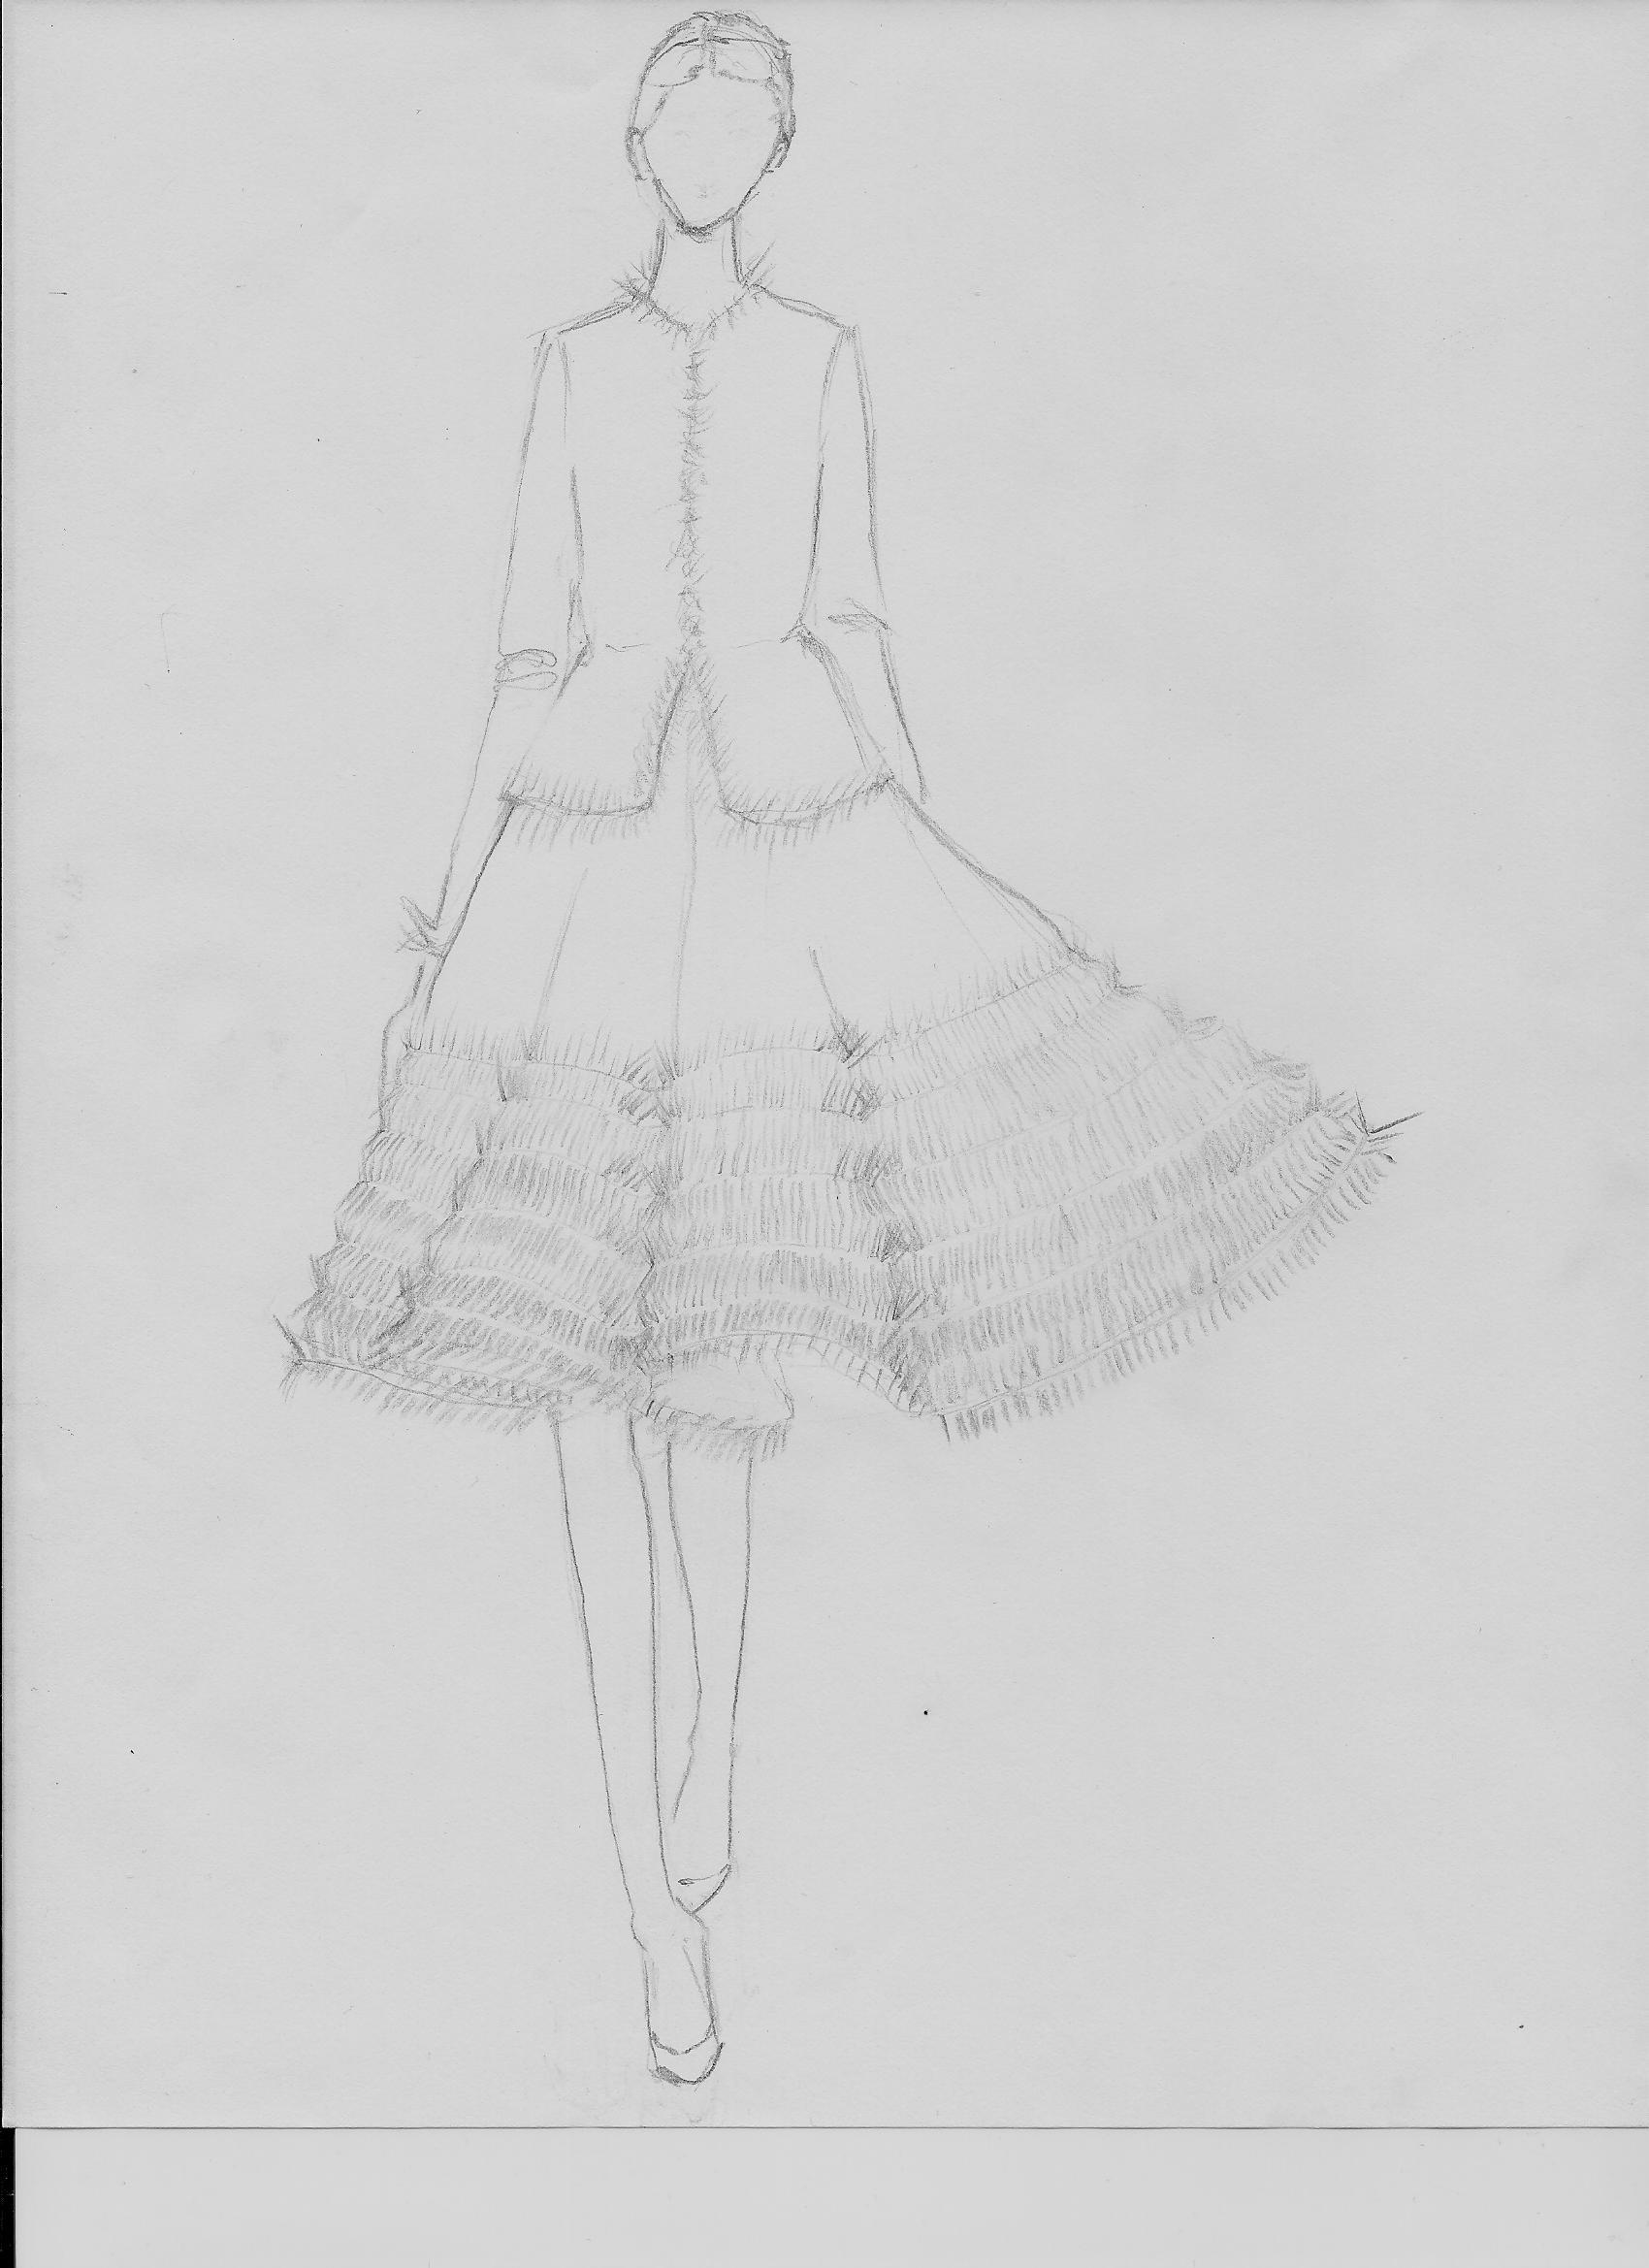 Sketch - Candid frills - image 2 - student project